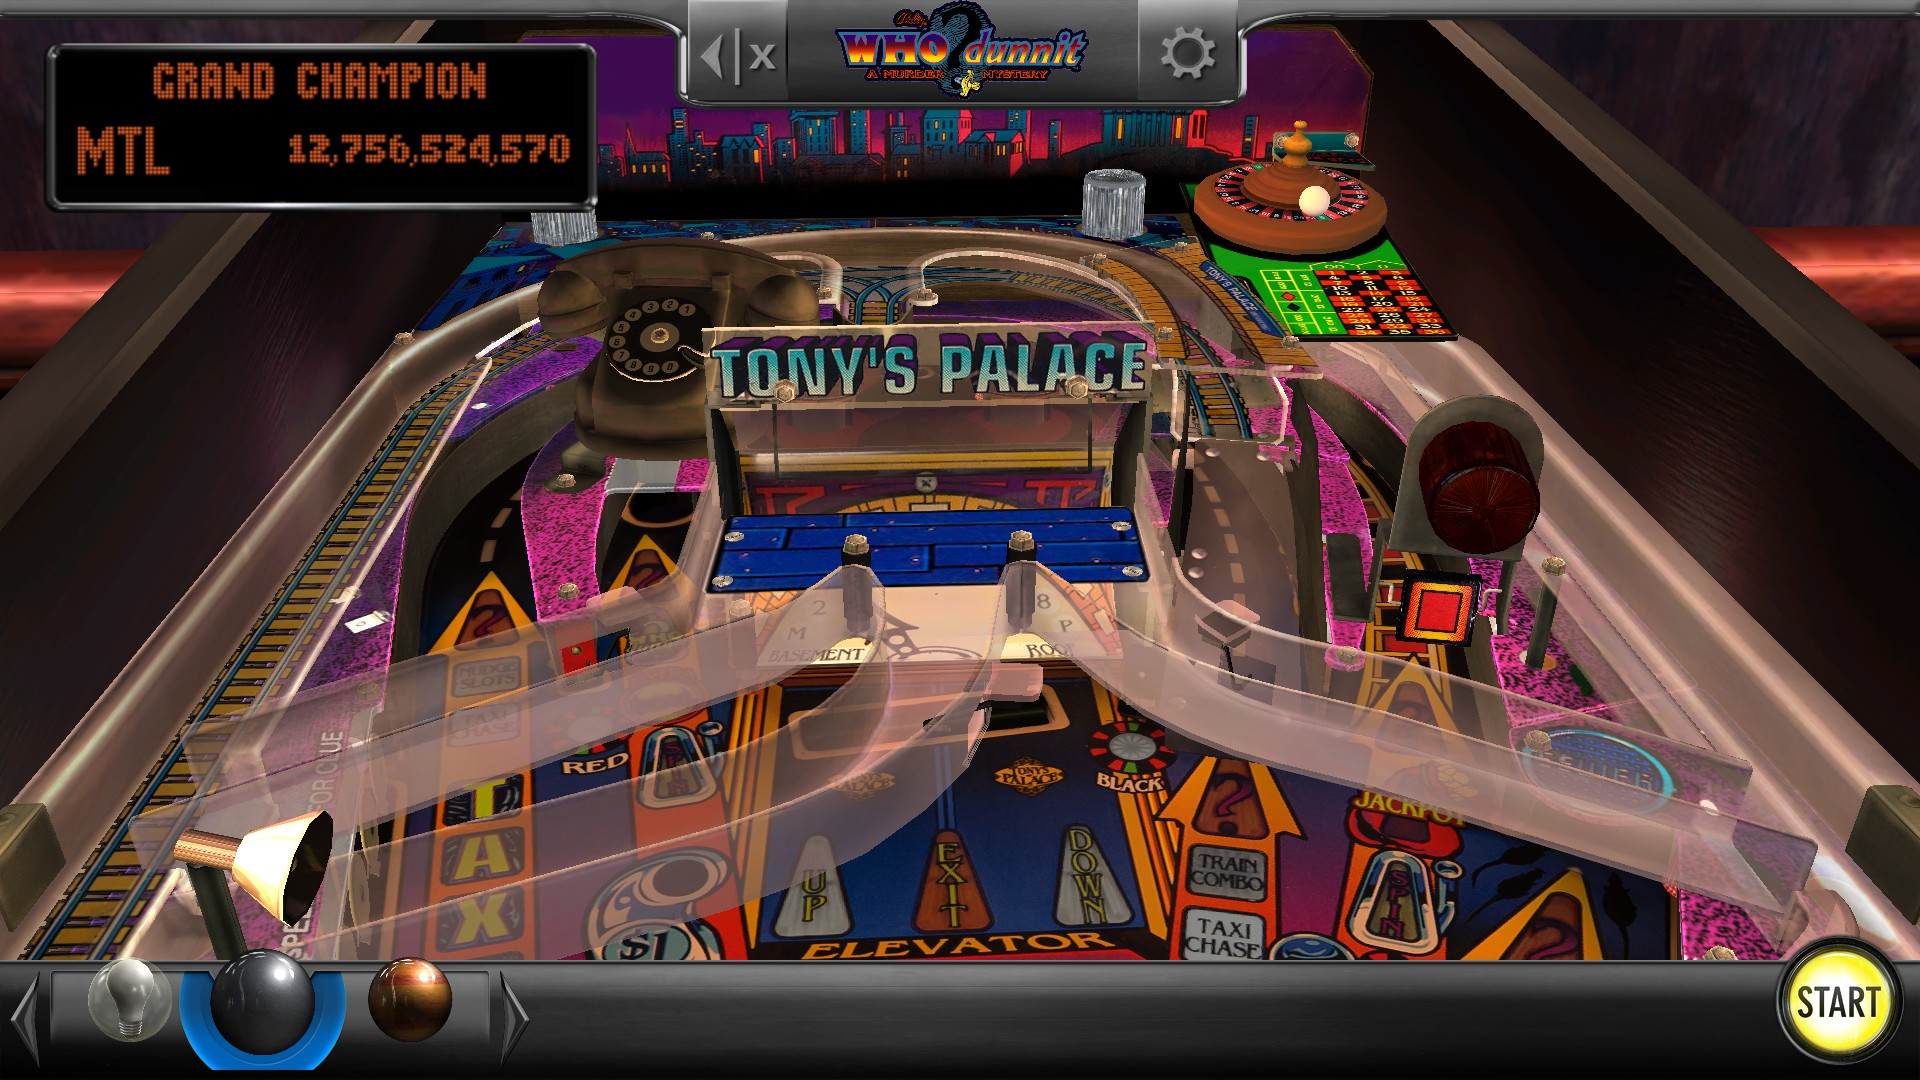 Mantalow: Pinball Arcade: WHO Dunnit (PC) 12,756,524,570 points on 2016-11-21 05:16:41